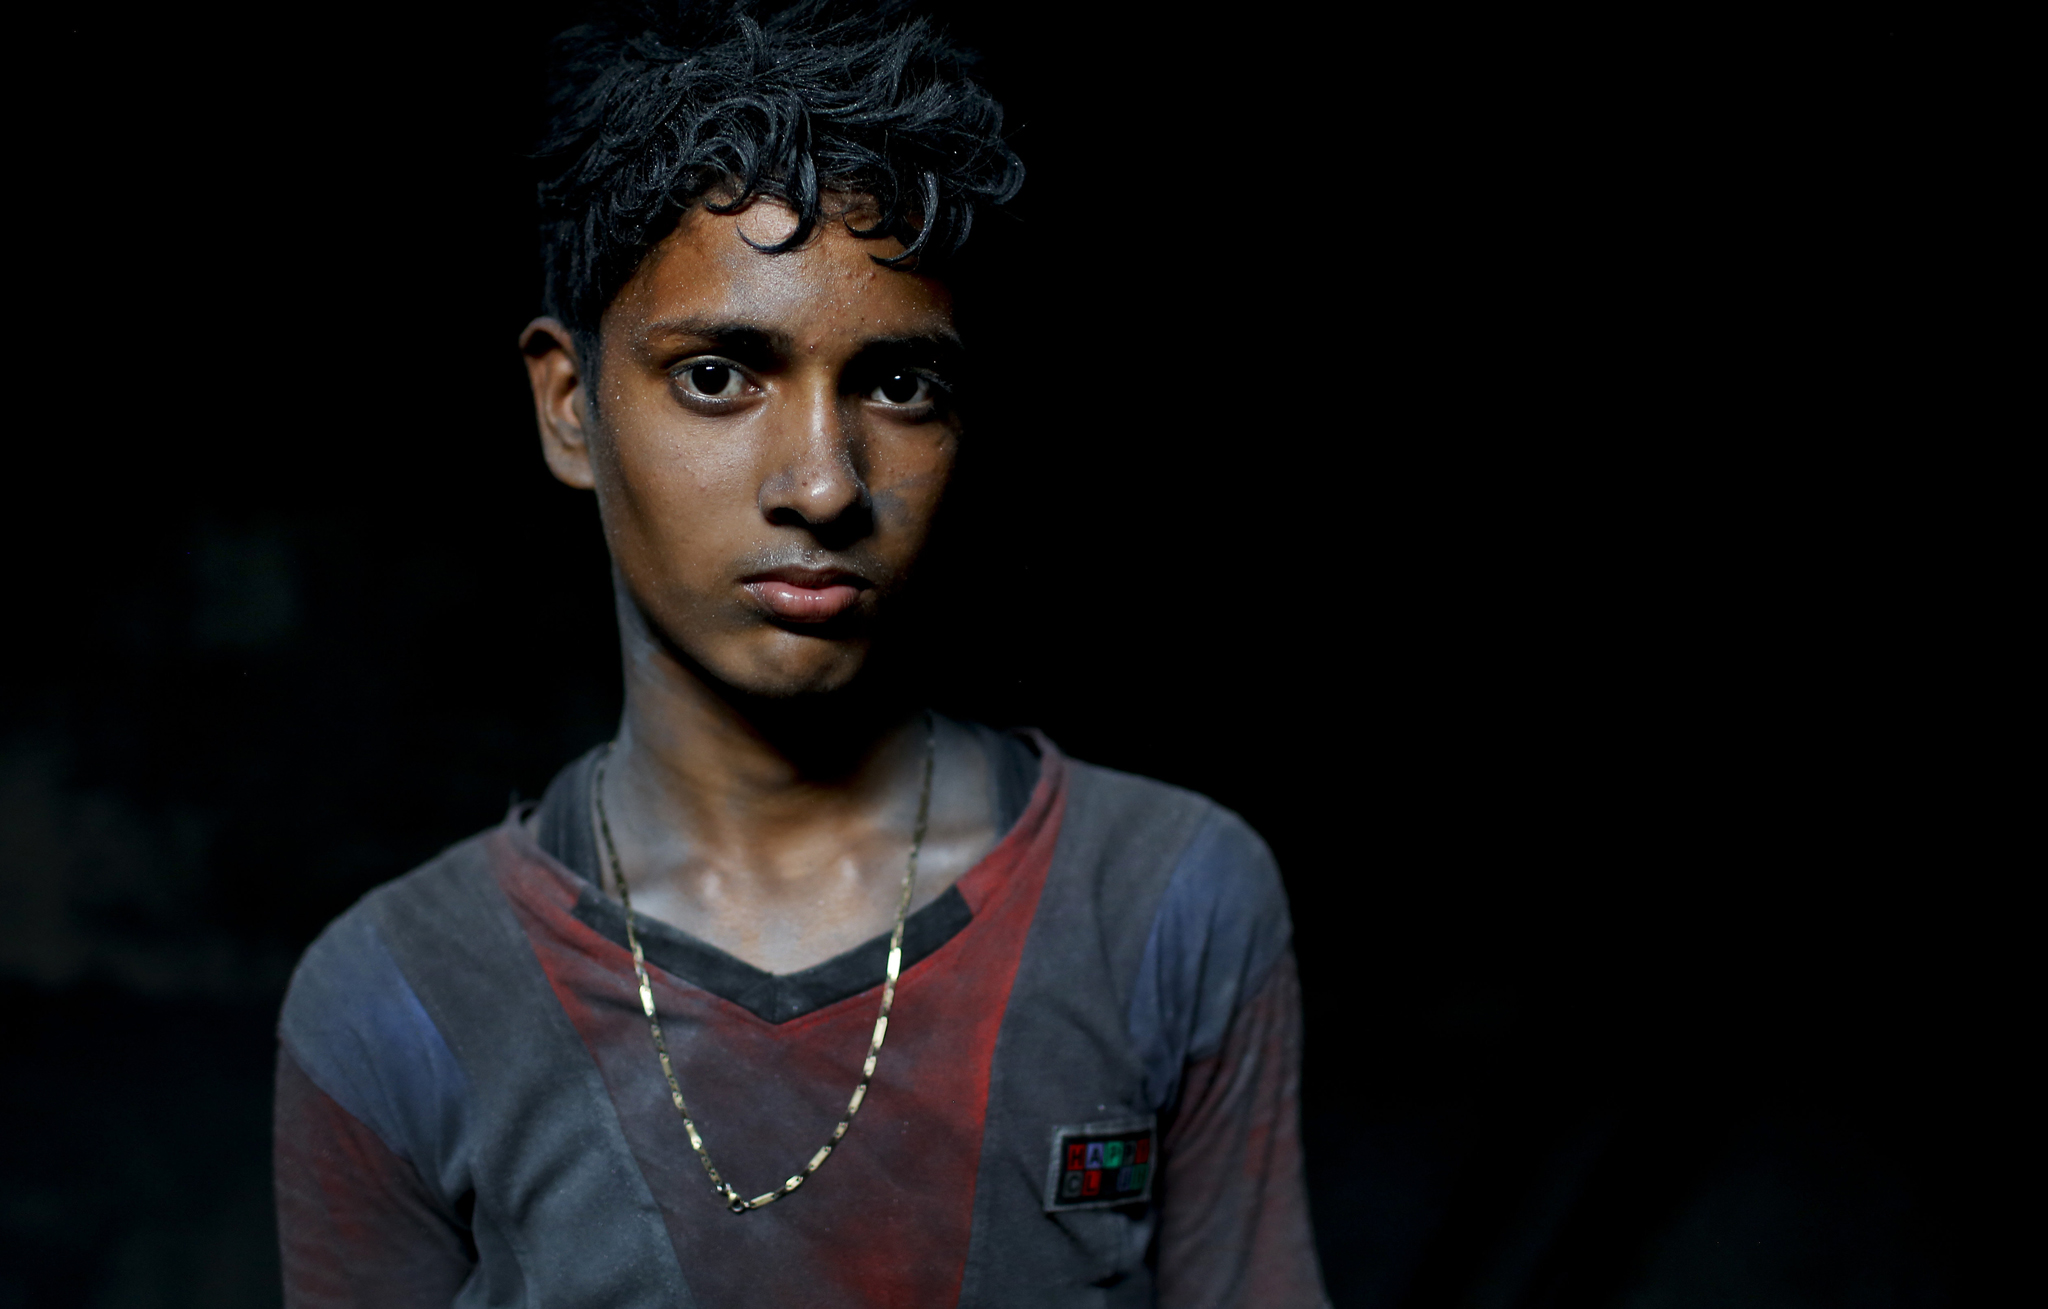 In this Sunday, June 12, 2016, photo, Nizam, 11, looks towards camera as he works at a factory that makes metal utensils in Dhaka, Bangladesh, Sunday, June 12, 2016. He earns less than $5 per week. The World Day Against Child Labor, which was initiated in 2002 by the International Labor Organization to highlight the plight of child laborers, is observed across the world on June 12. (AP Photo/ A.M. Ahad)